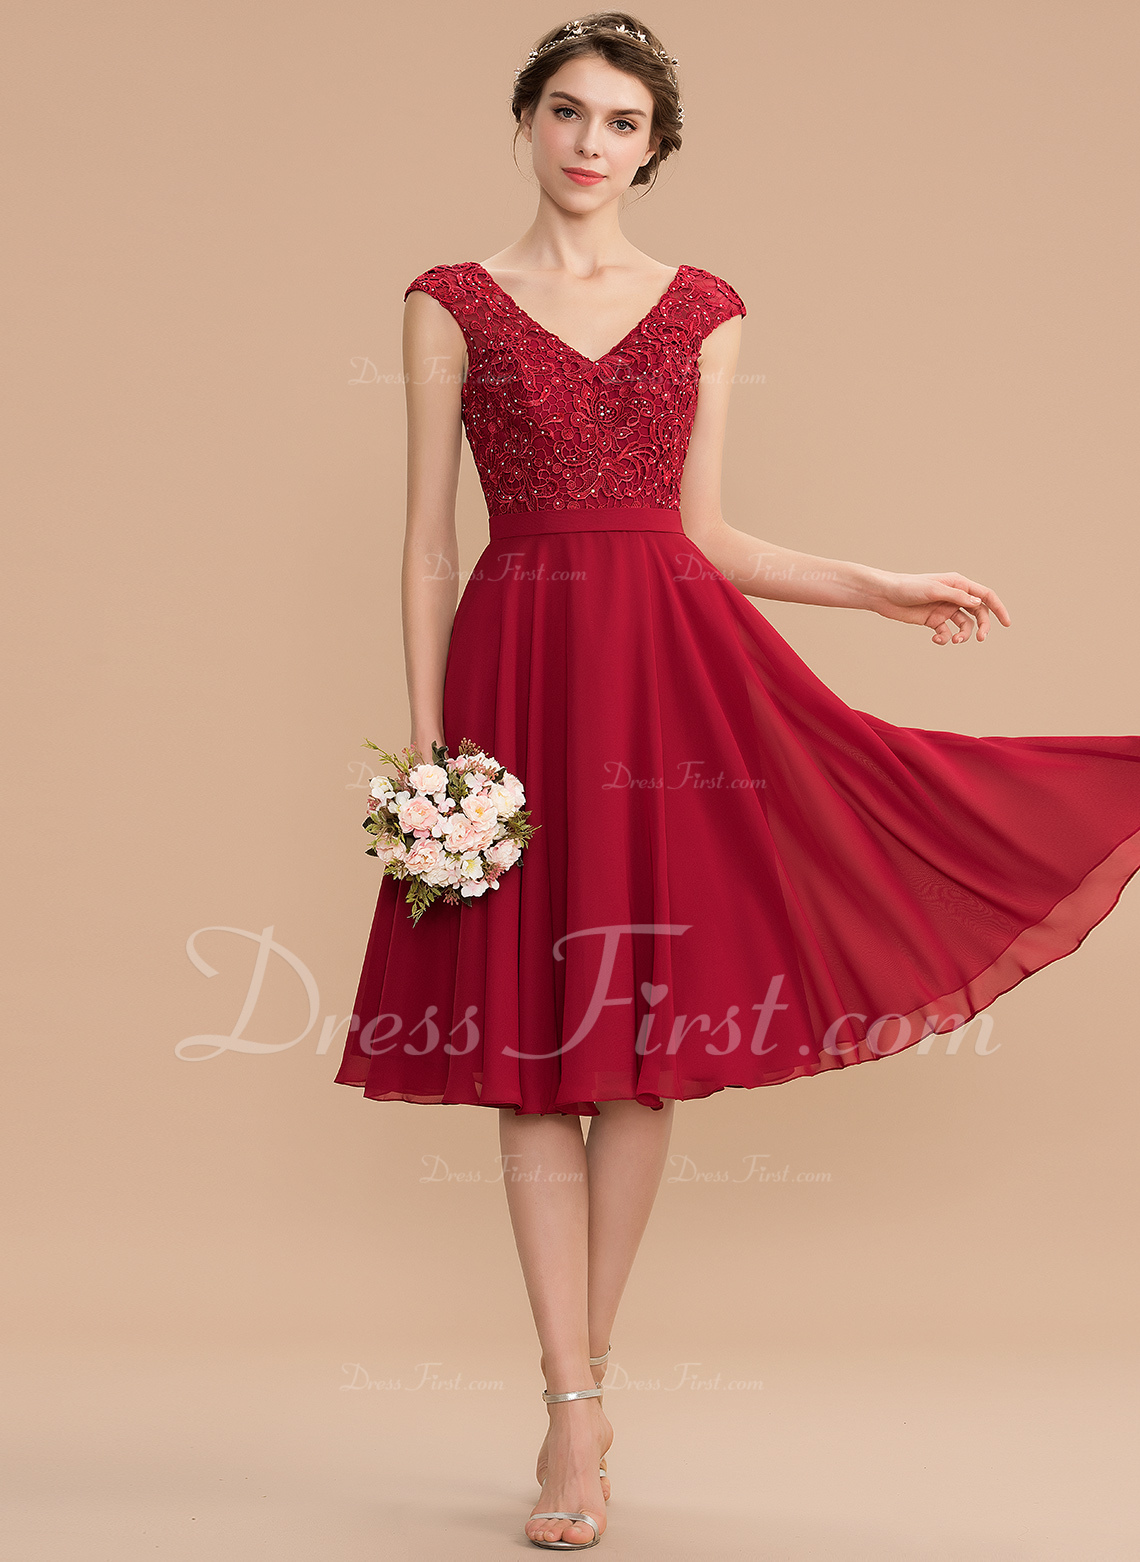 89420709567f52 A-Line V-neck Knee-Length Chiffon Lace Bridesmaid Dress With Beading #165871